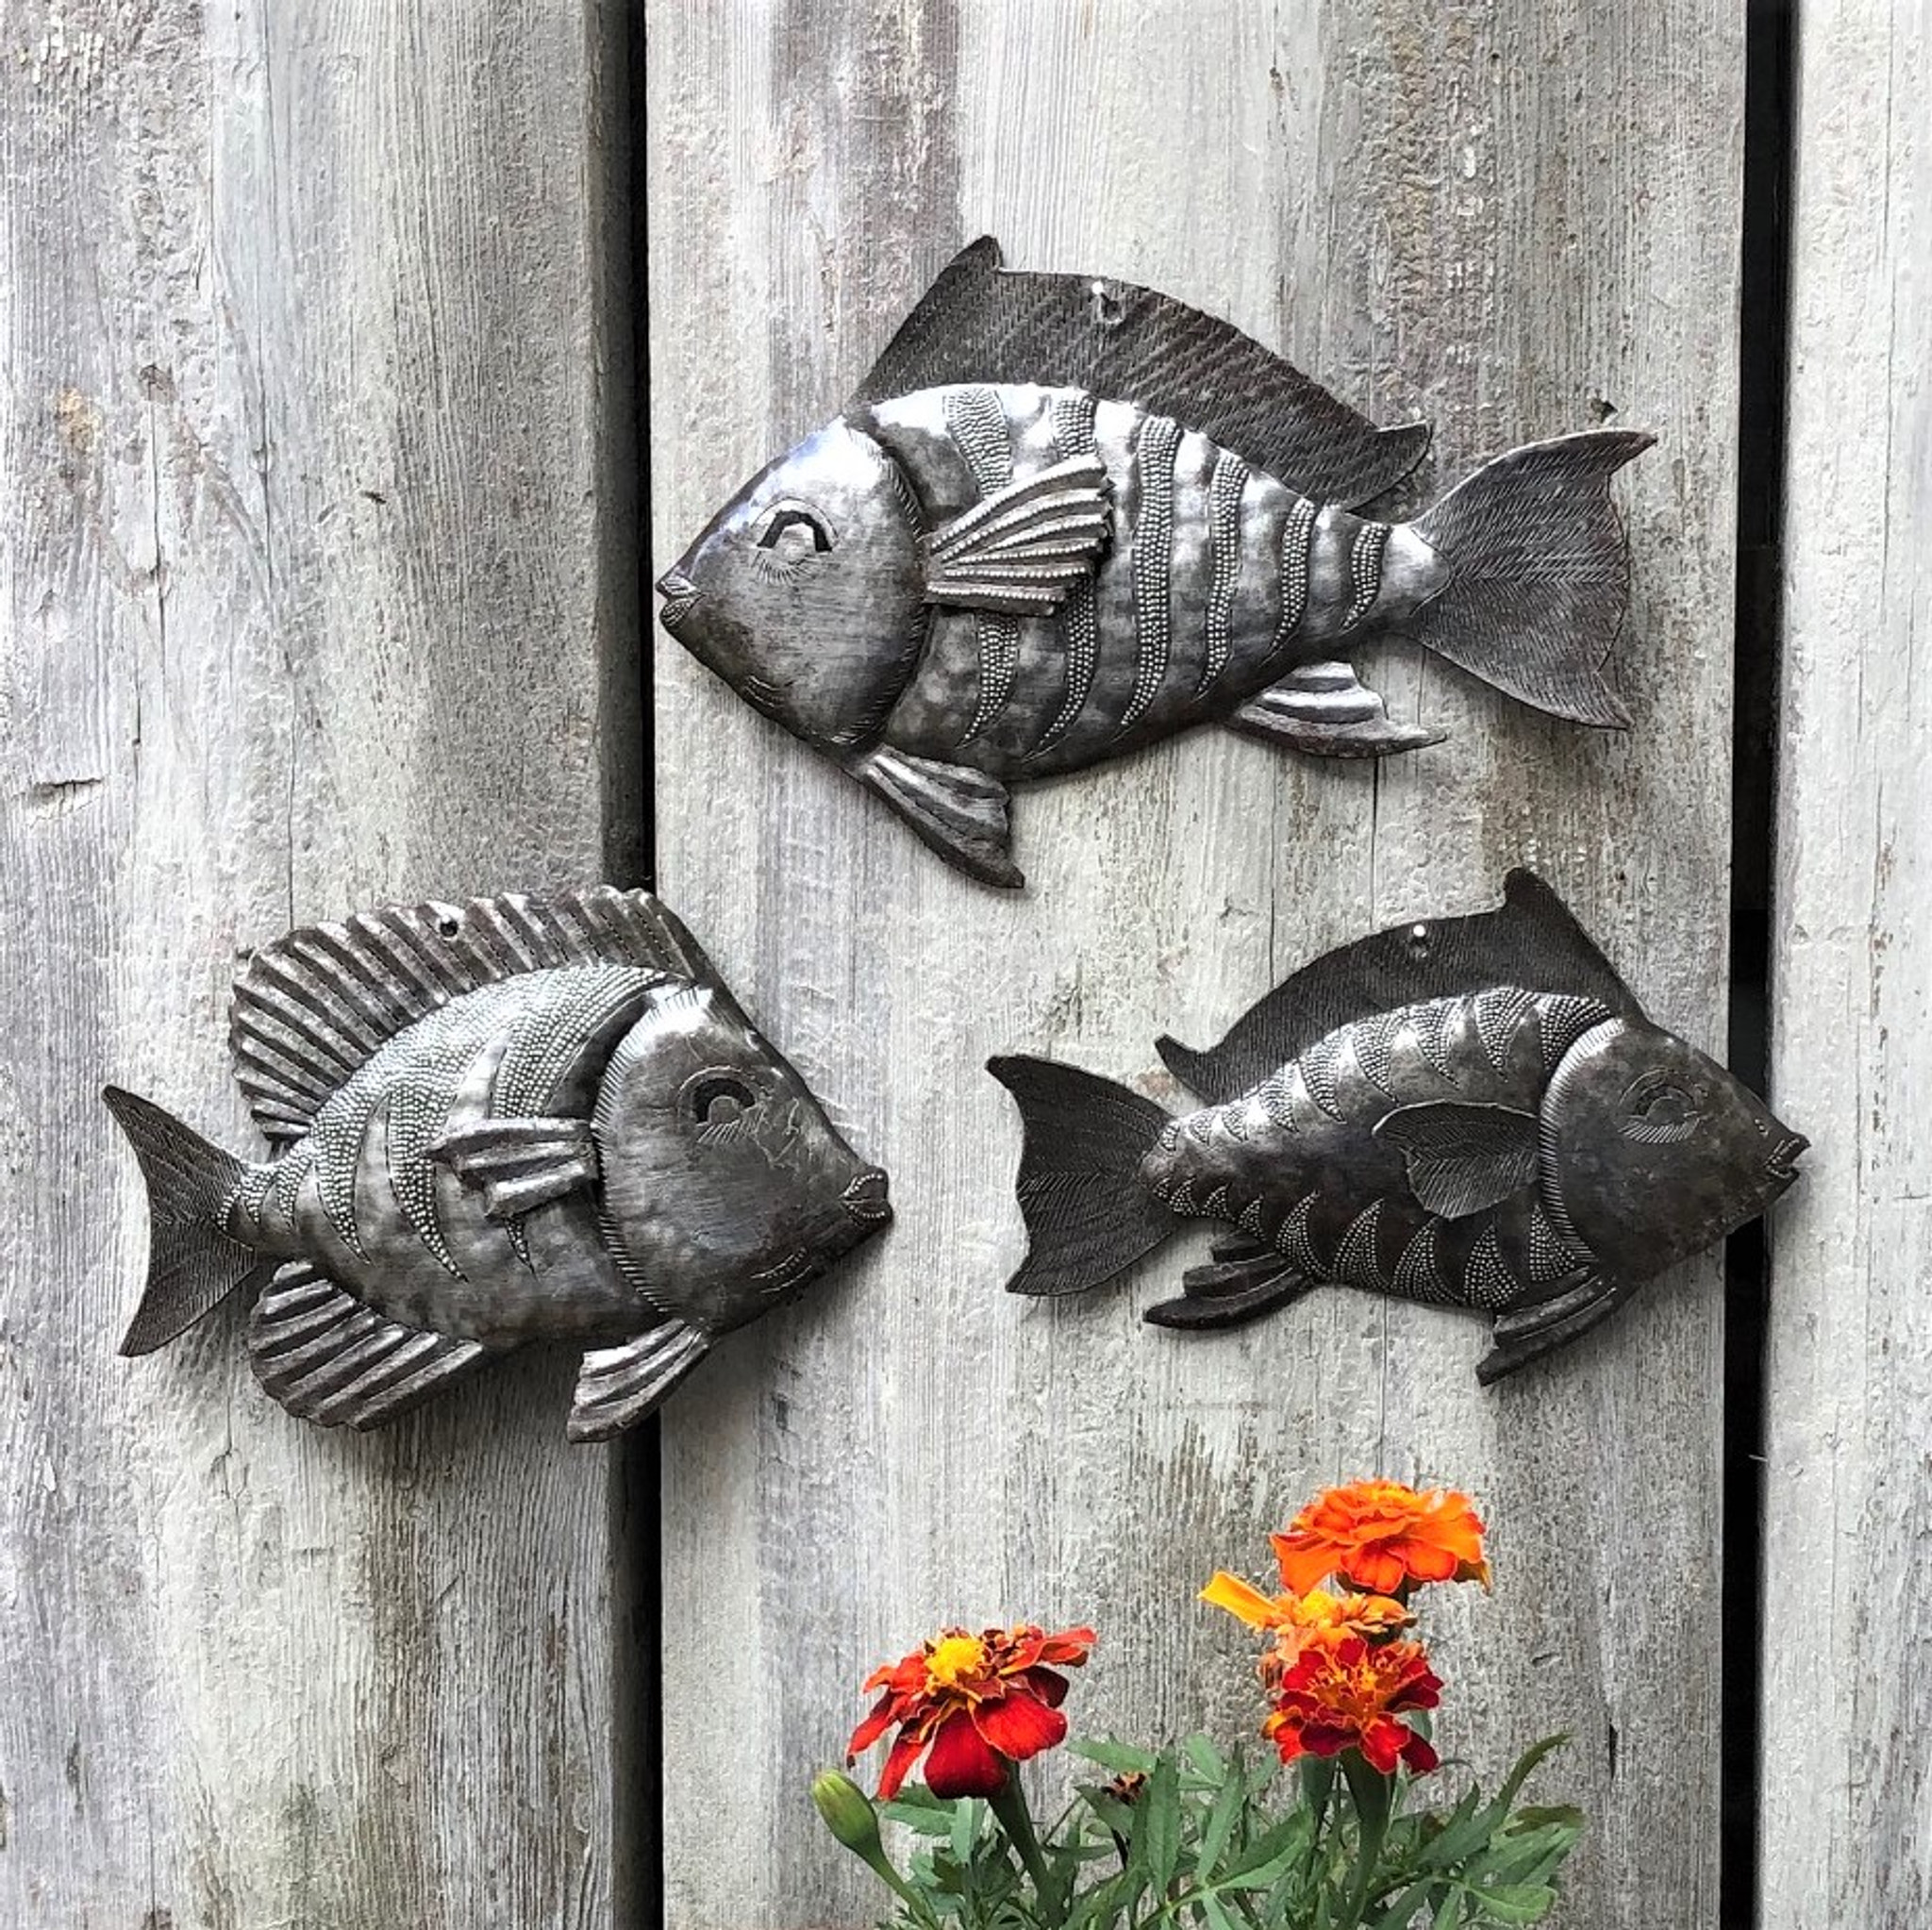 School Of Fish Nautical Theme Wall Art Set Of 3 Wall Hanging Beach Themed Home Decor Whimsical Catch Of The Day